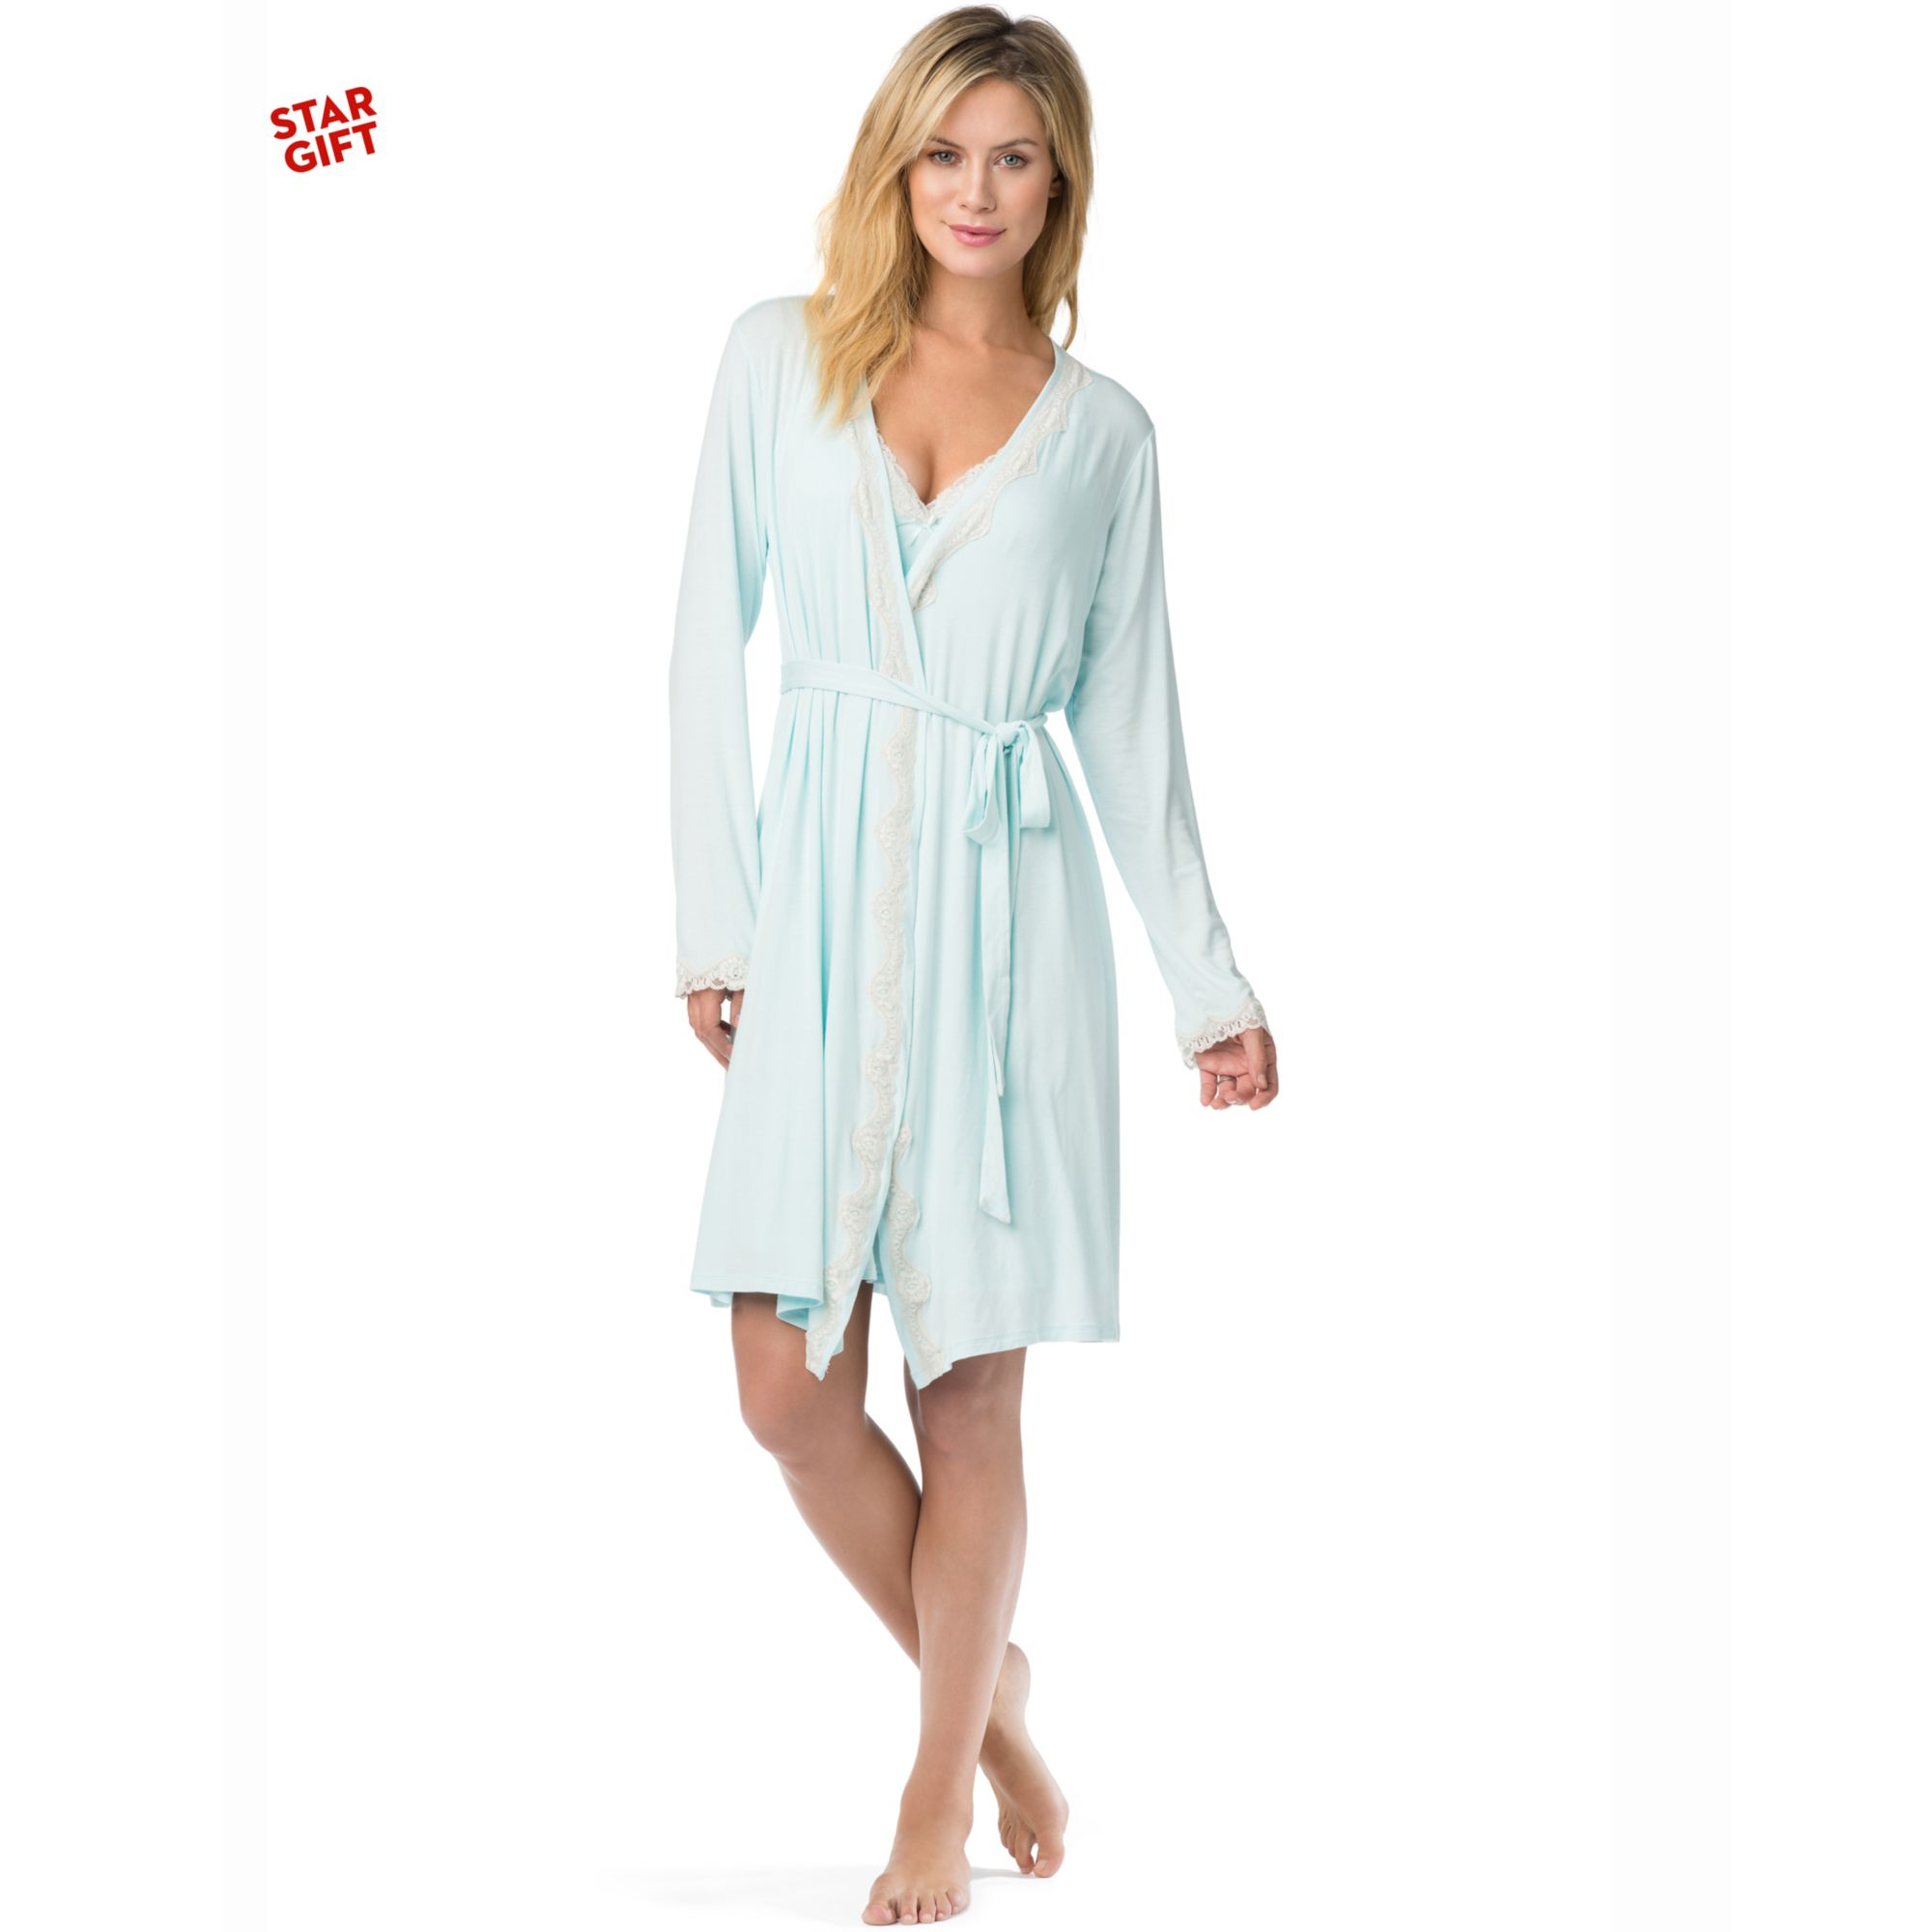 Lyst - Jessica Simpson Maternity Twopiece Nursing Nightgown Set in Blue